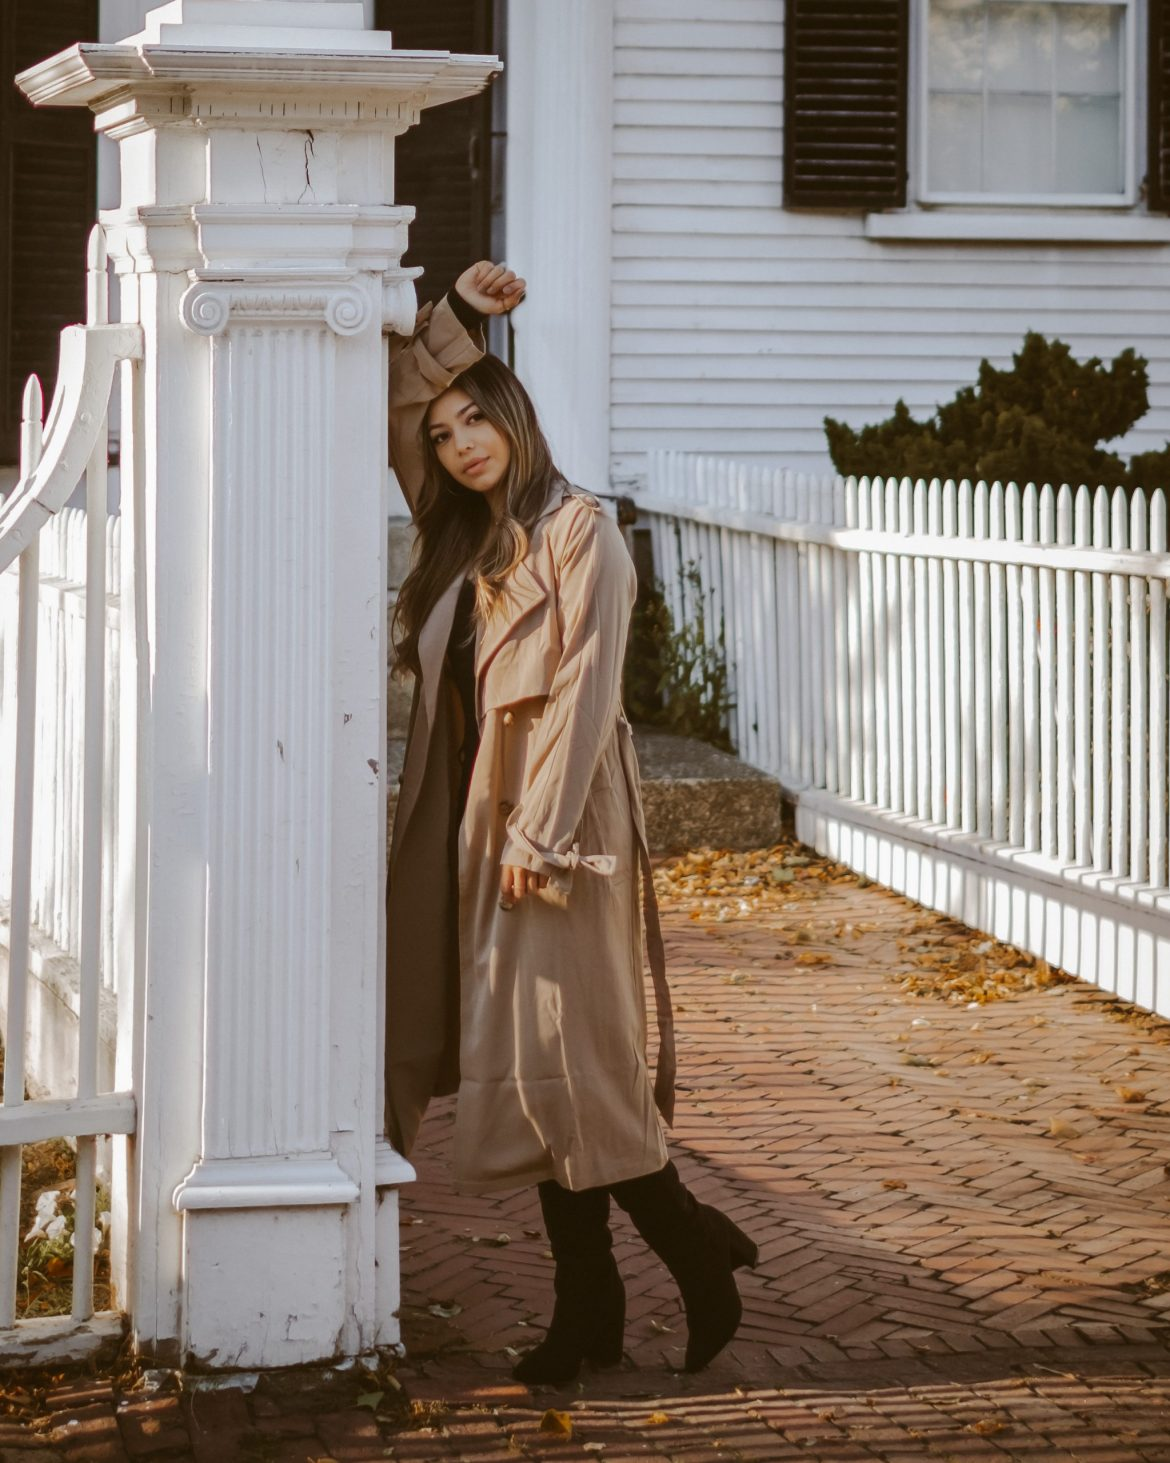 Where To Find All The Hocus Pocus Filming Locations in Salem, Massachusetts - outfit for Salem, fall outfit, what to do in Salem, photo inspo for Salem